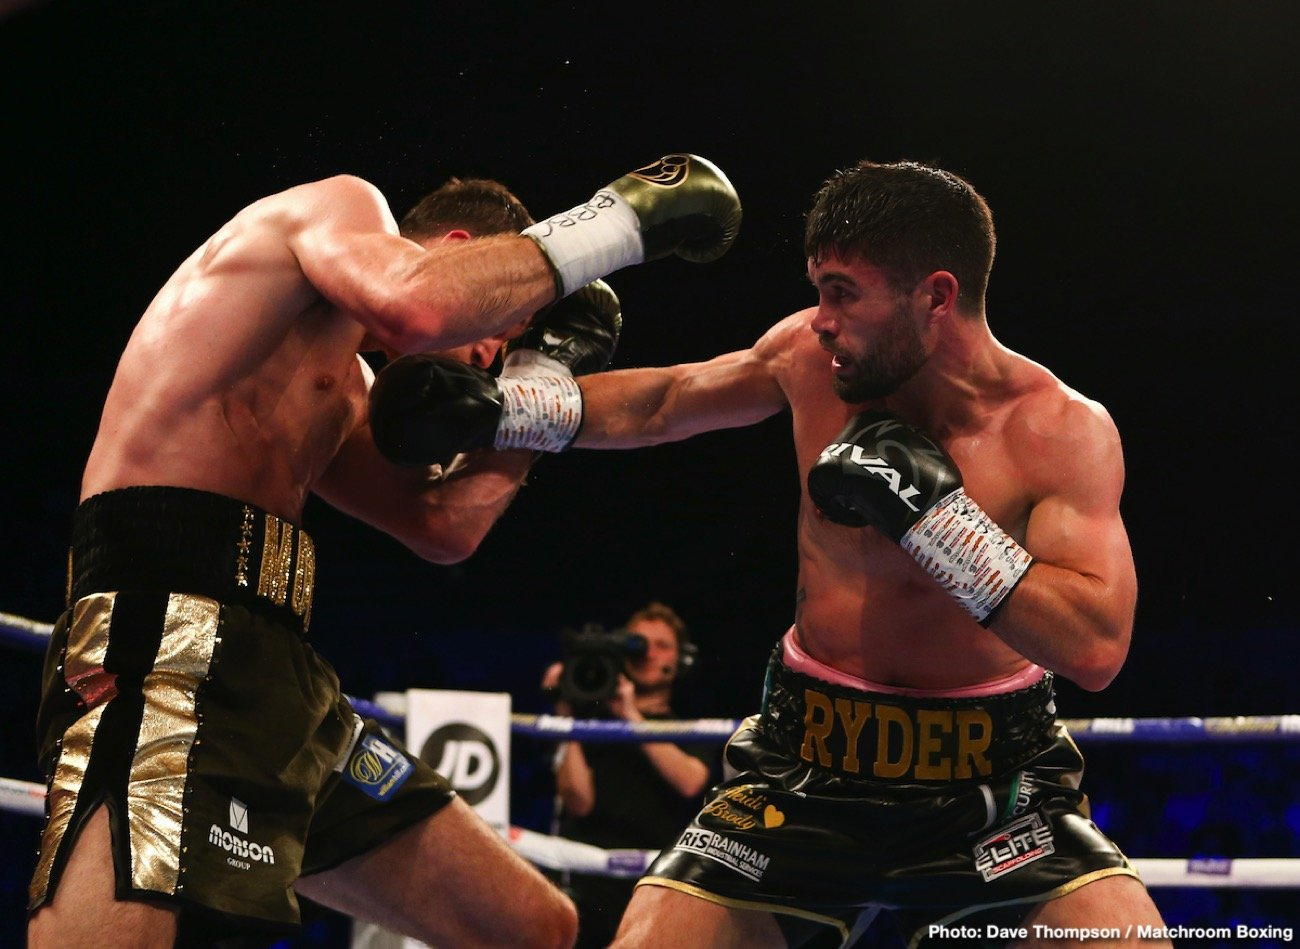 John Ryder - In a poor performance, WBA Super World super middleweight champion Callum Smith (27-0, 19 KOs) labored hard to win a 12 round unanimous decision over John 'Gorilla' Ryder (28-5, 16 KOs) on Saturday night at the M&S Bank Arena in Liverpool.